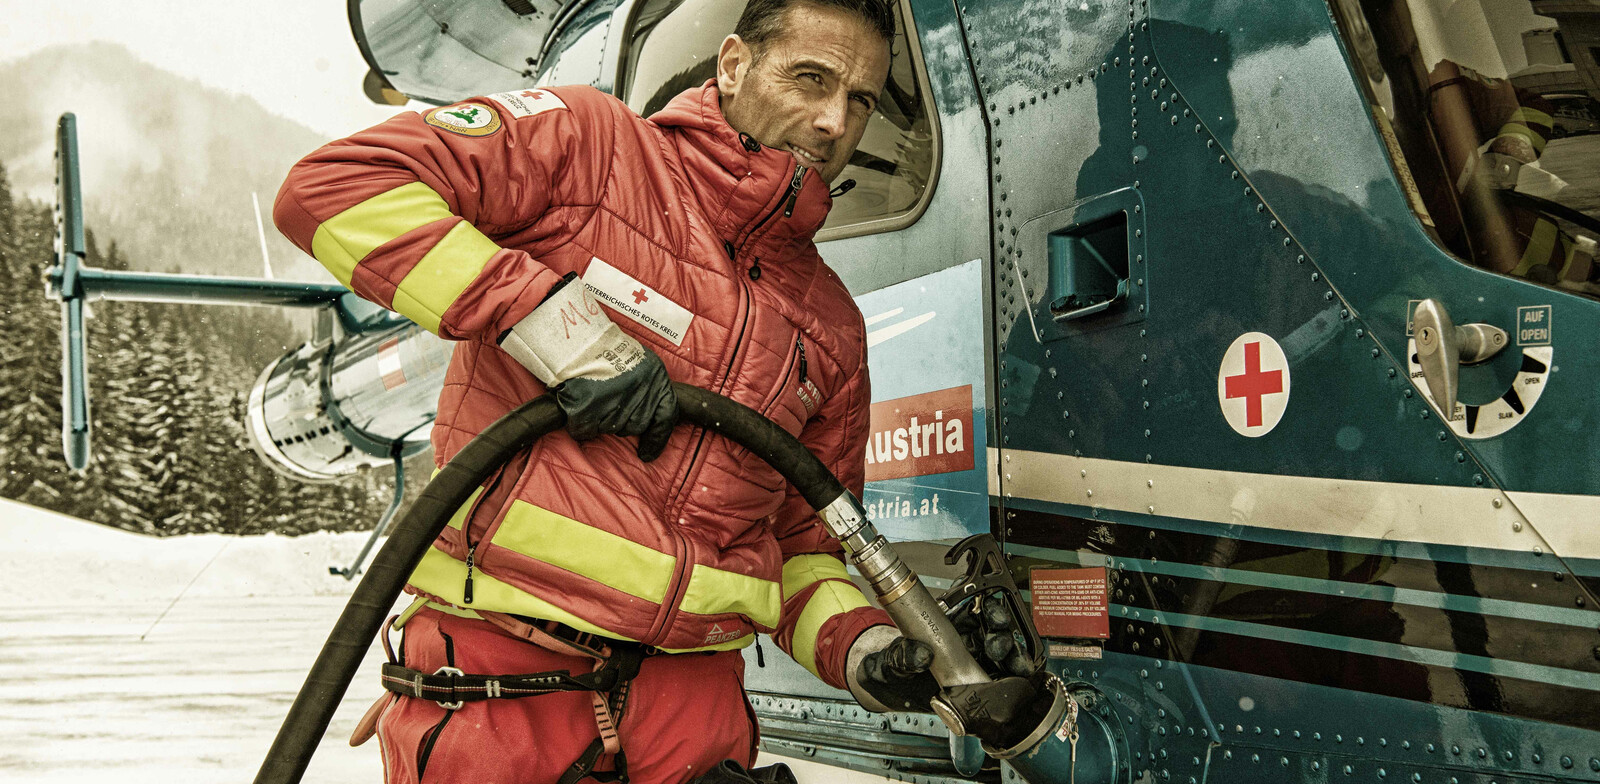 Toni Voithofer refuels the helicopter after a rescue mission. | © Edith Danzer